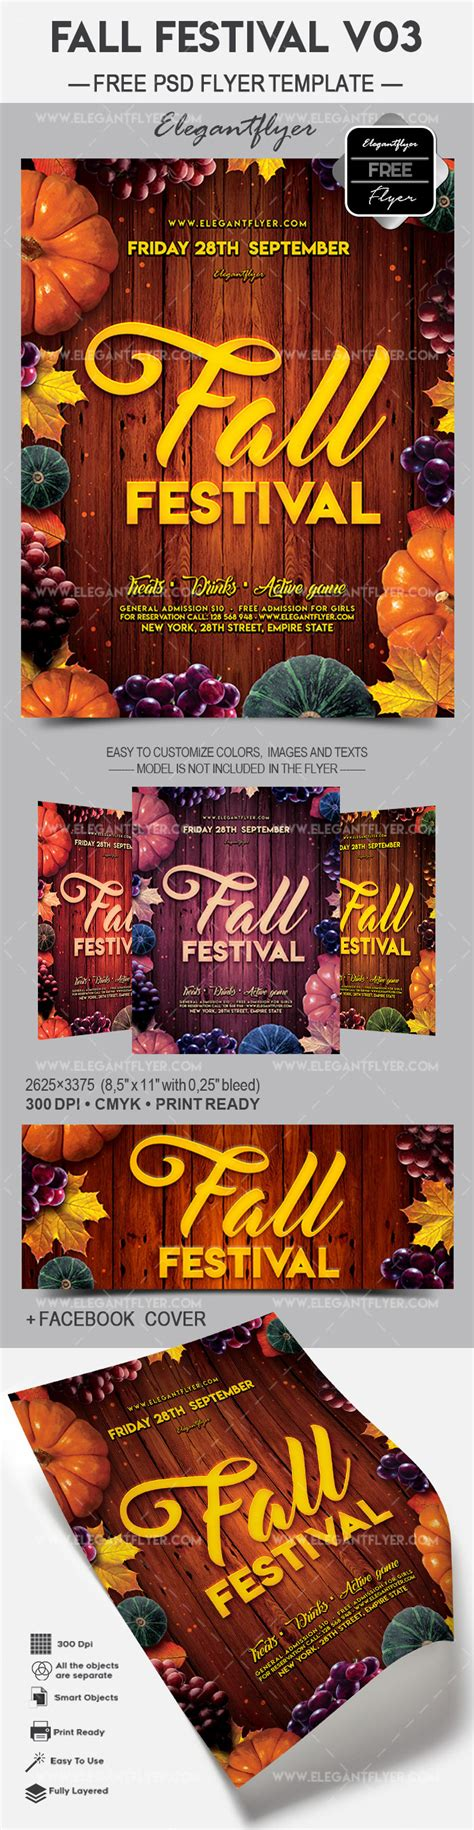 Fall Festival V03  Free Flyer Psd Template  By Elegantflyer. Missionary Prayer Card Template. Paper Star Lantern Template. Lost Pet Poster Template. Education Resume Template Free. Create Resume Templates In Word. Check Off List Template. Business Budget Excel Template. Wedding Table Number Template